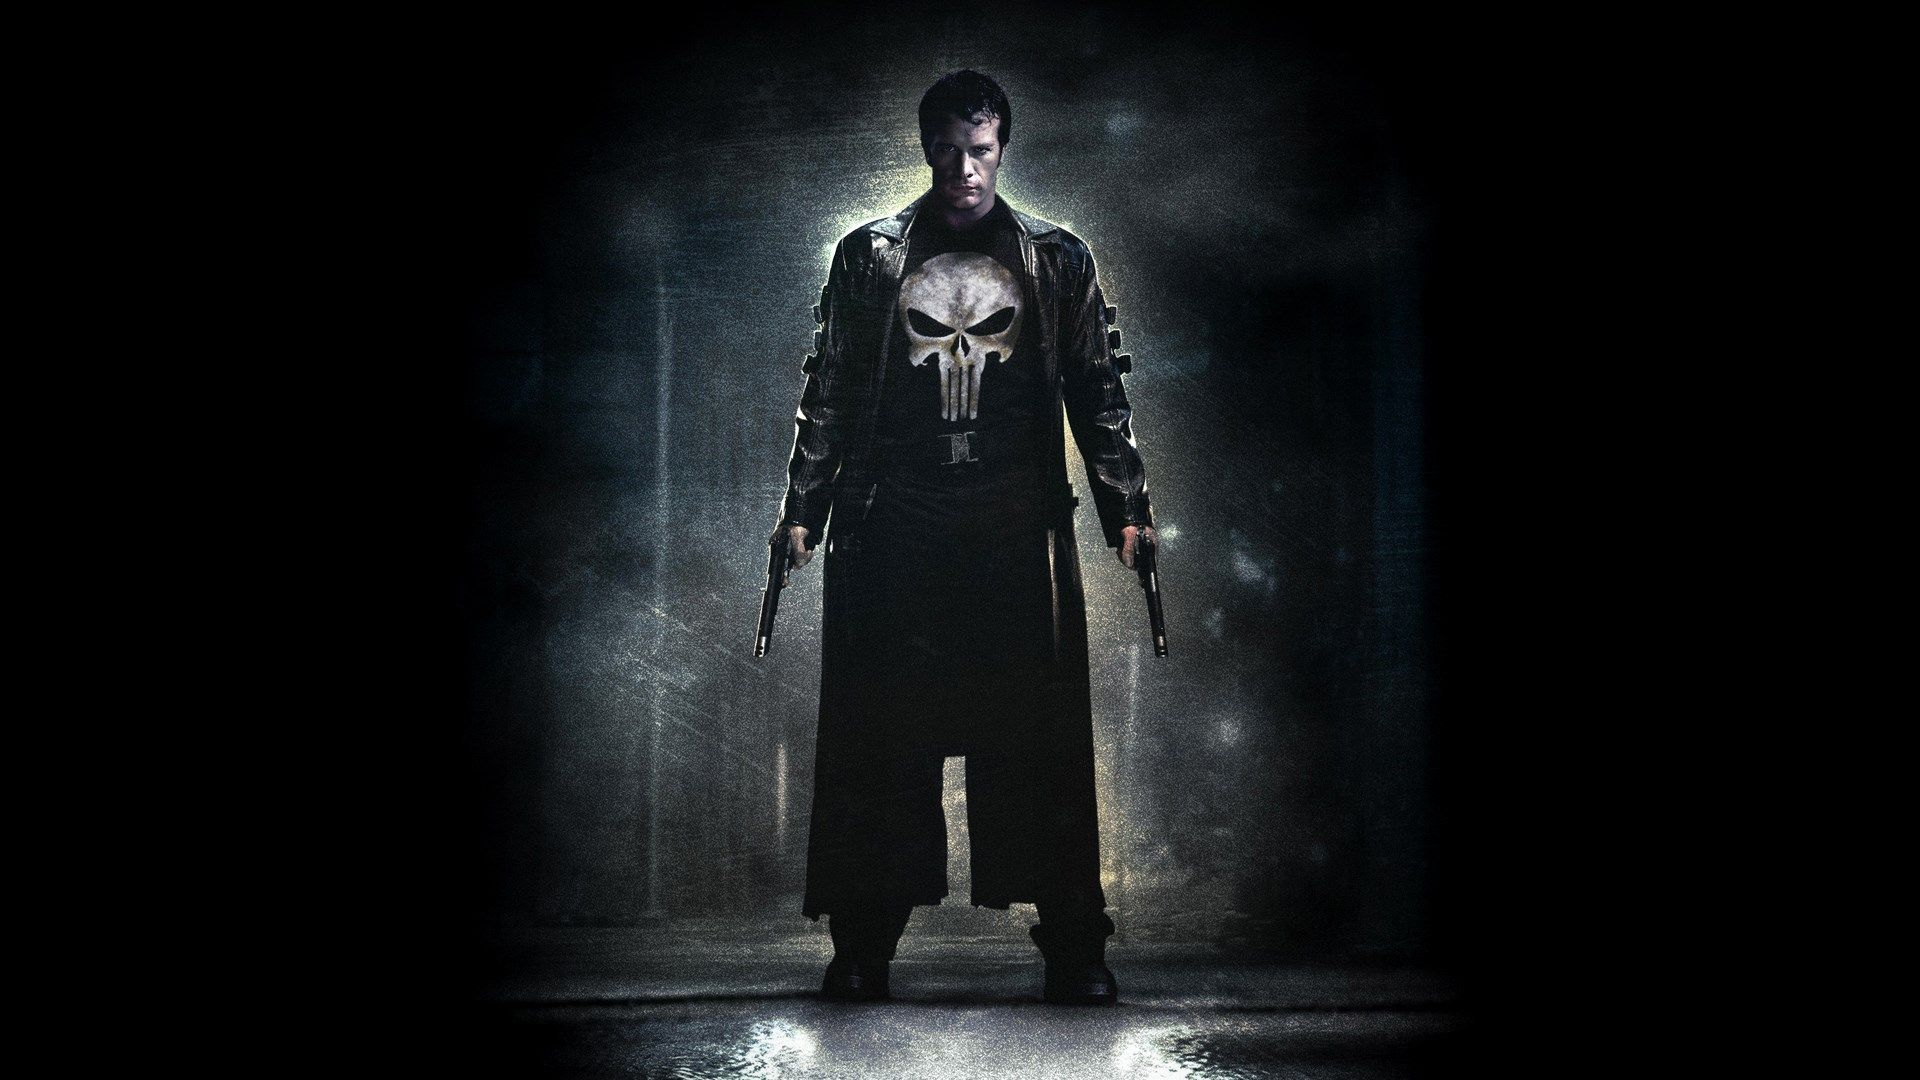 Punisher hd wallpapers 1080p high quality ololoshenka punisher hd wallpapers 1080p high quality voltagebd Images